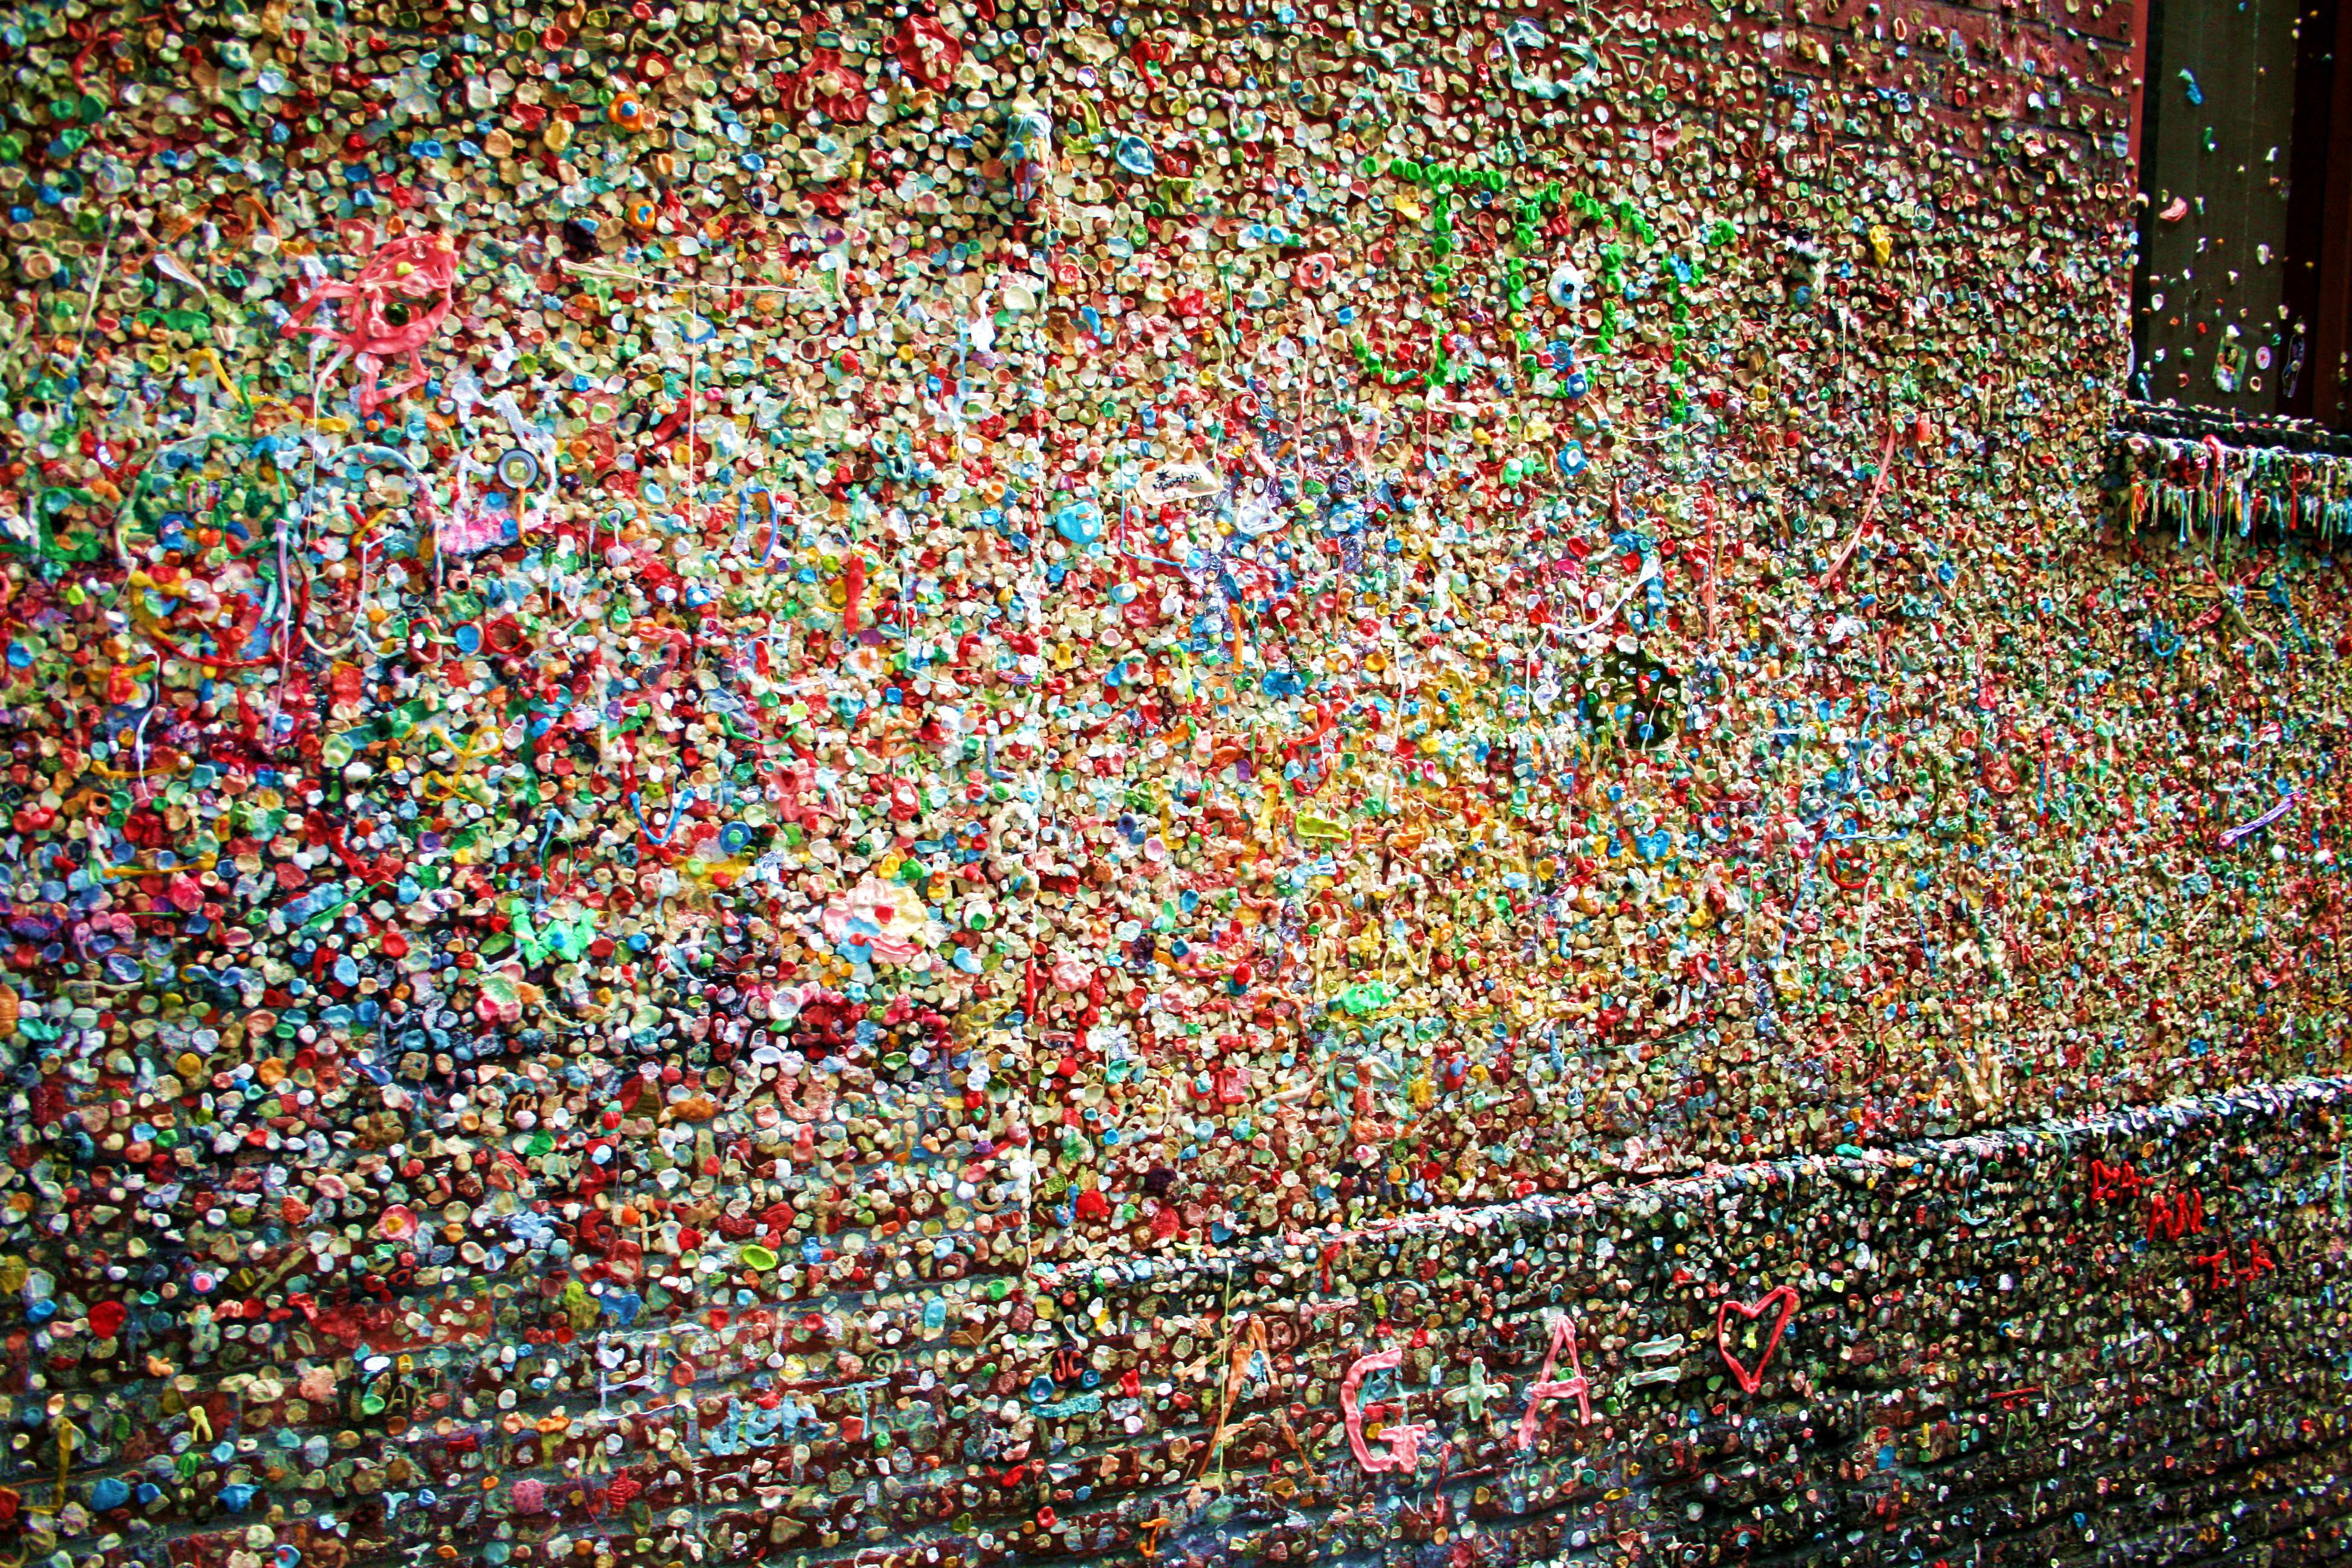 Tourists from all over the world have come to stick chewing gum to a wall on Post Alley near Pike Place Market in Seattle.